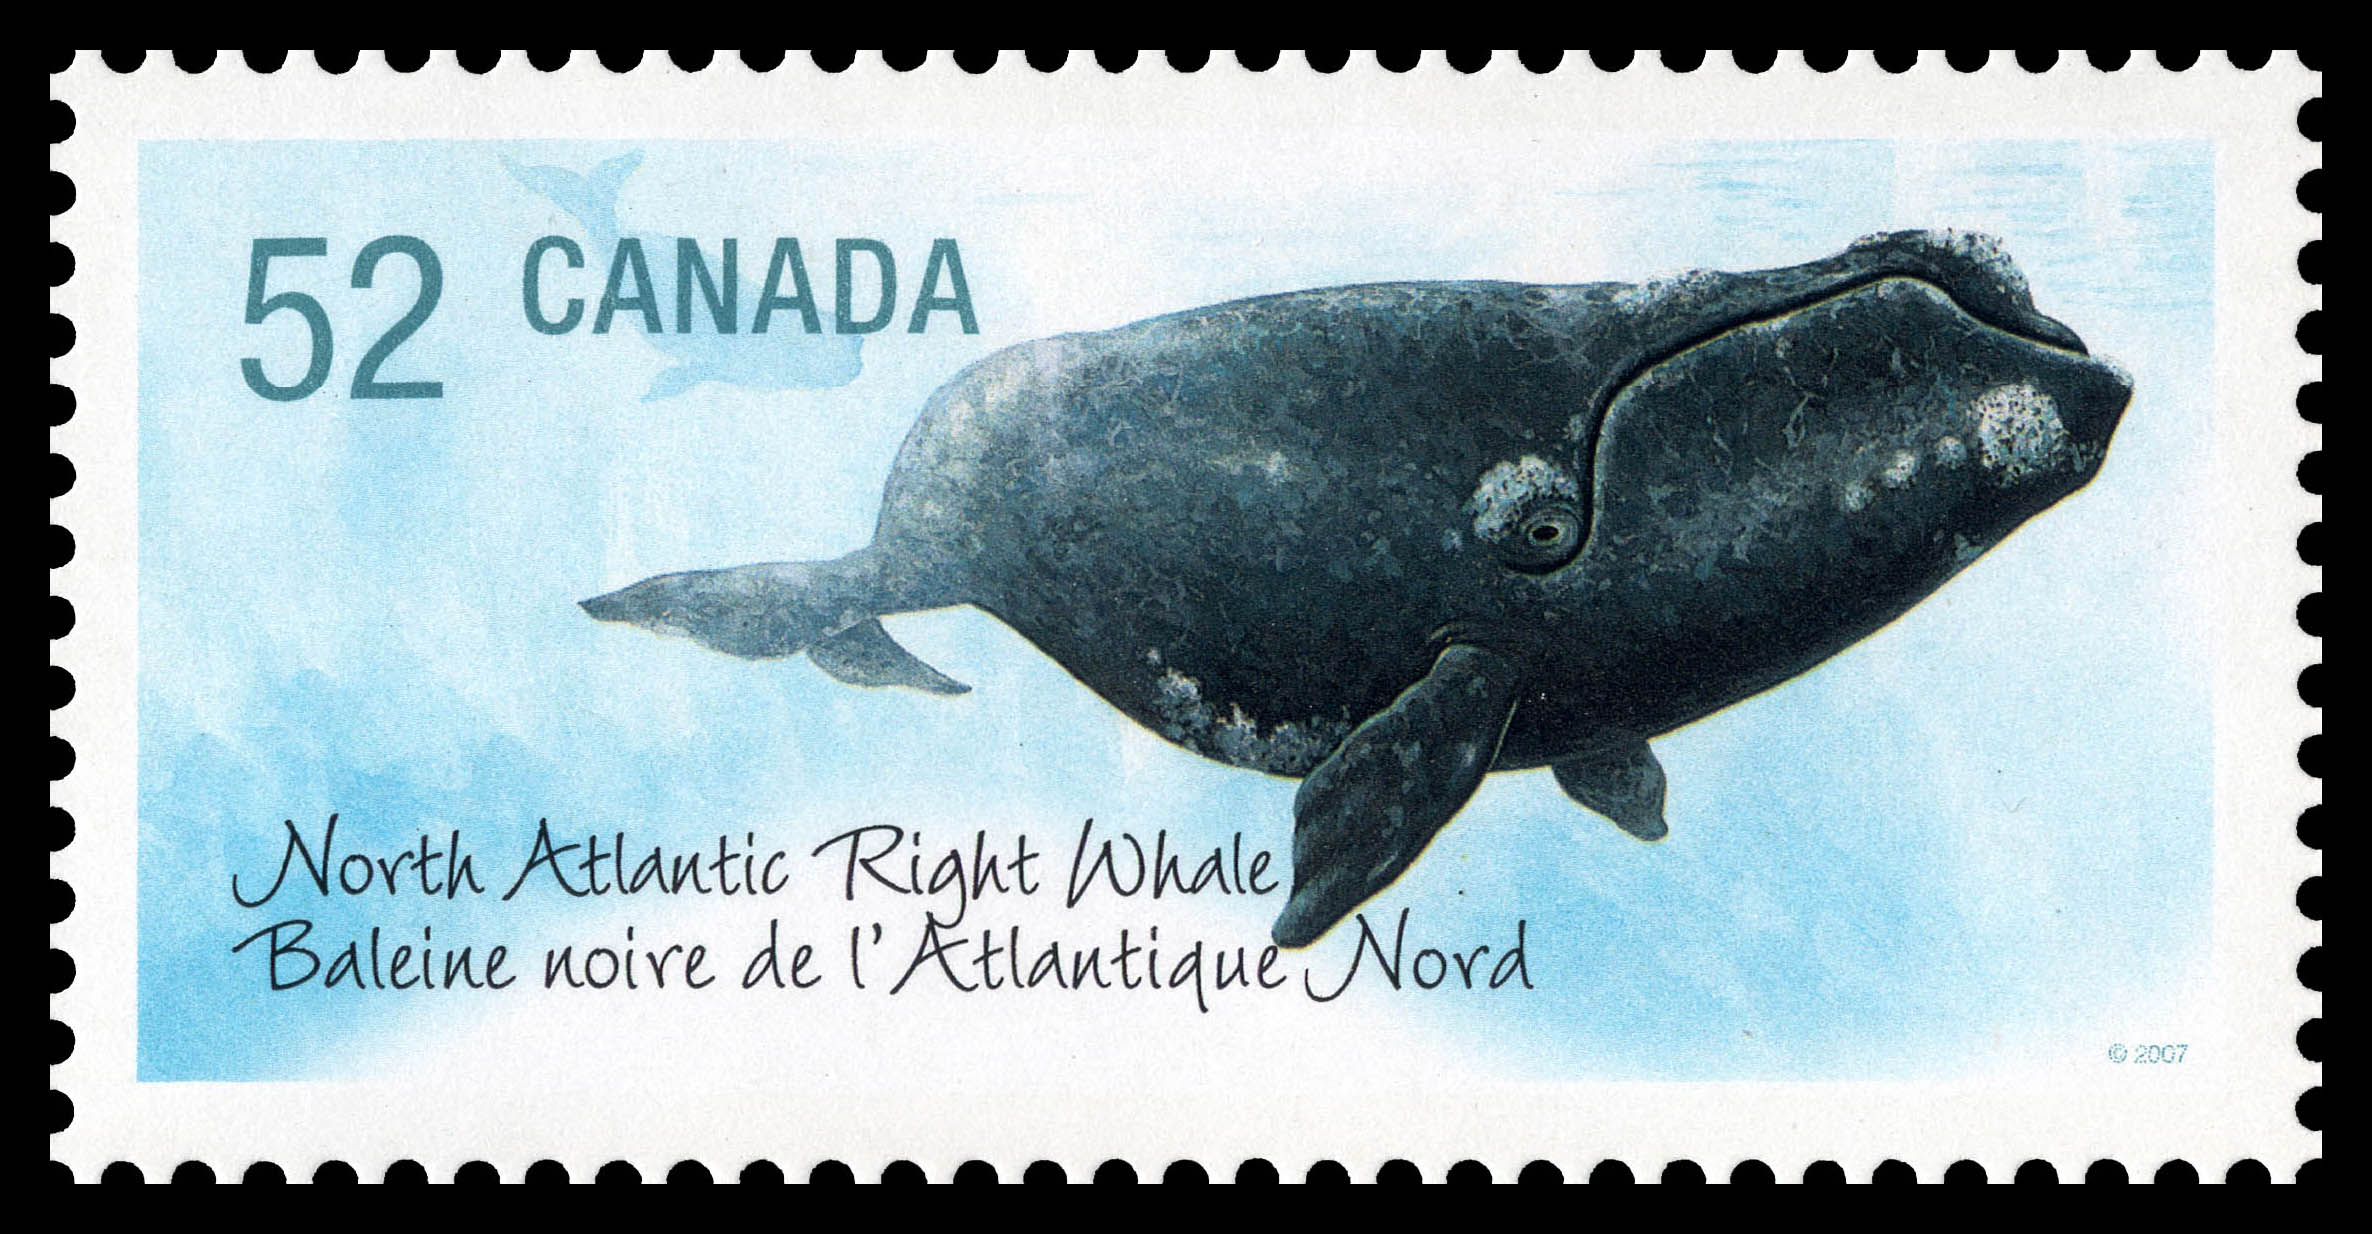 North Atlantic Right Whale Canada Postage Stamp